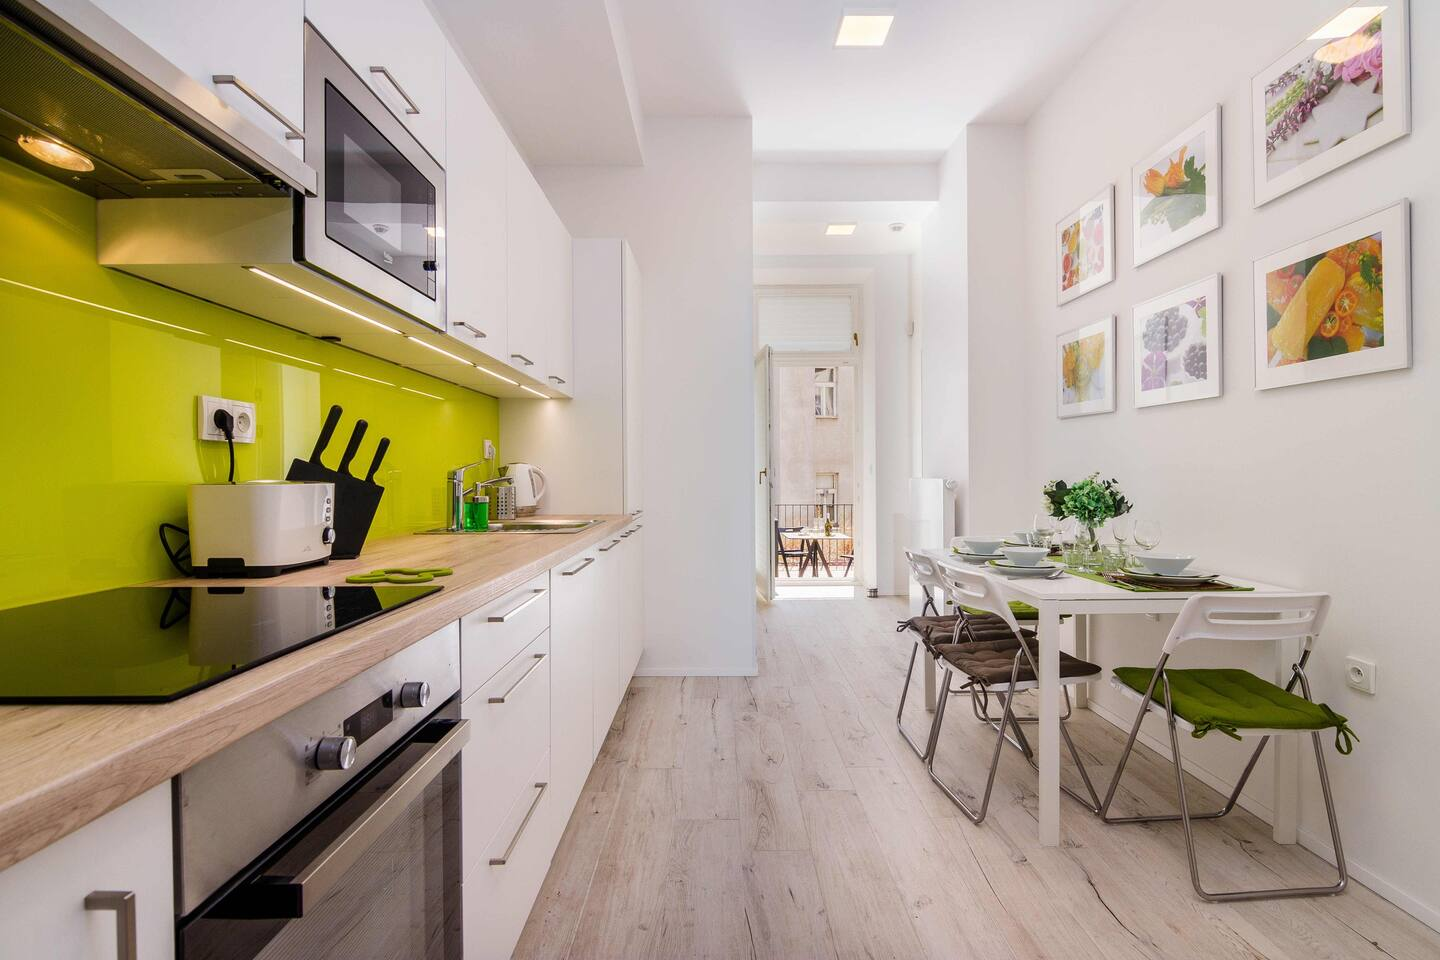 Our kitchen is perfectly equipped with everything you might need in attemp to prepare some tasty food.